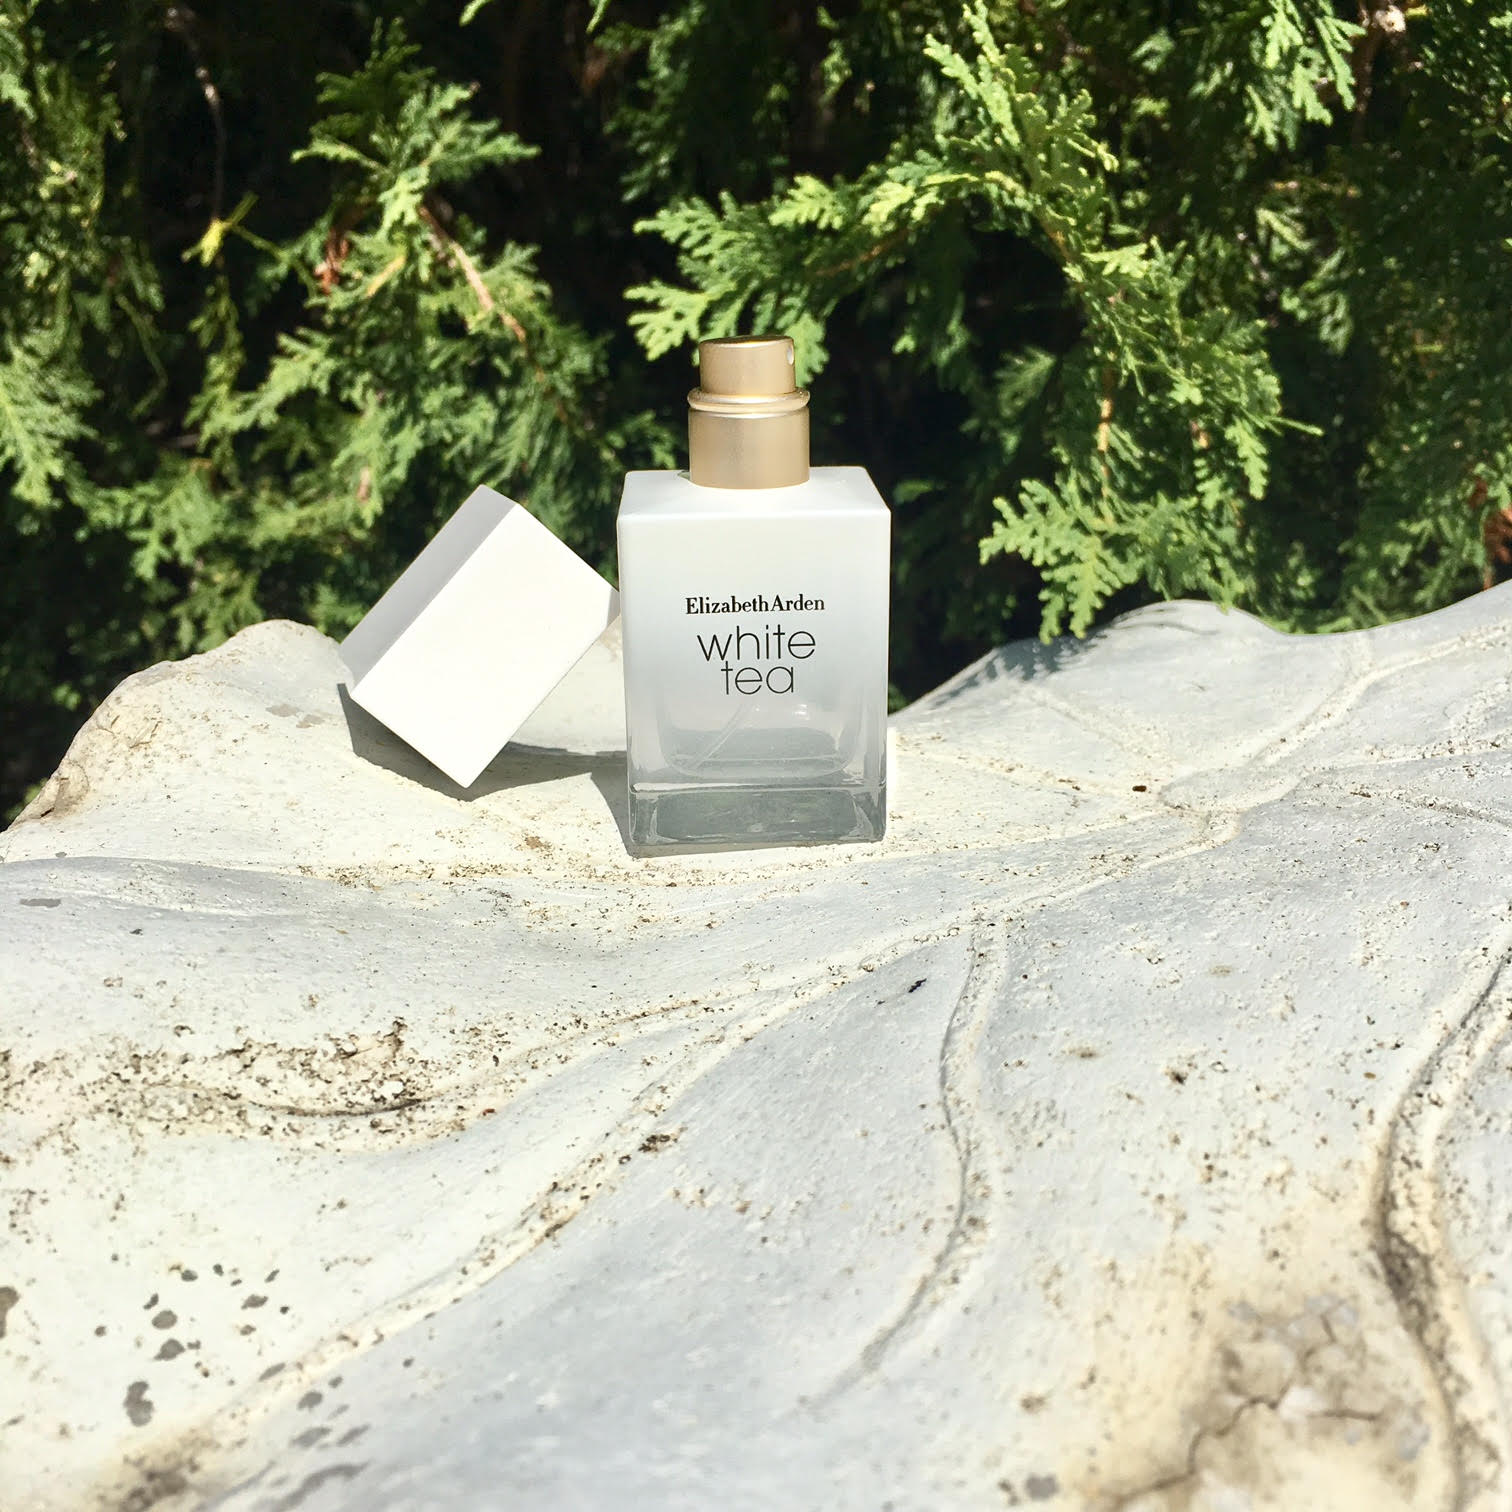 Summer Fragrance elizabeth arden white tea